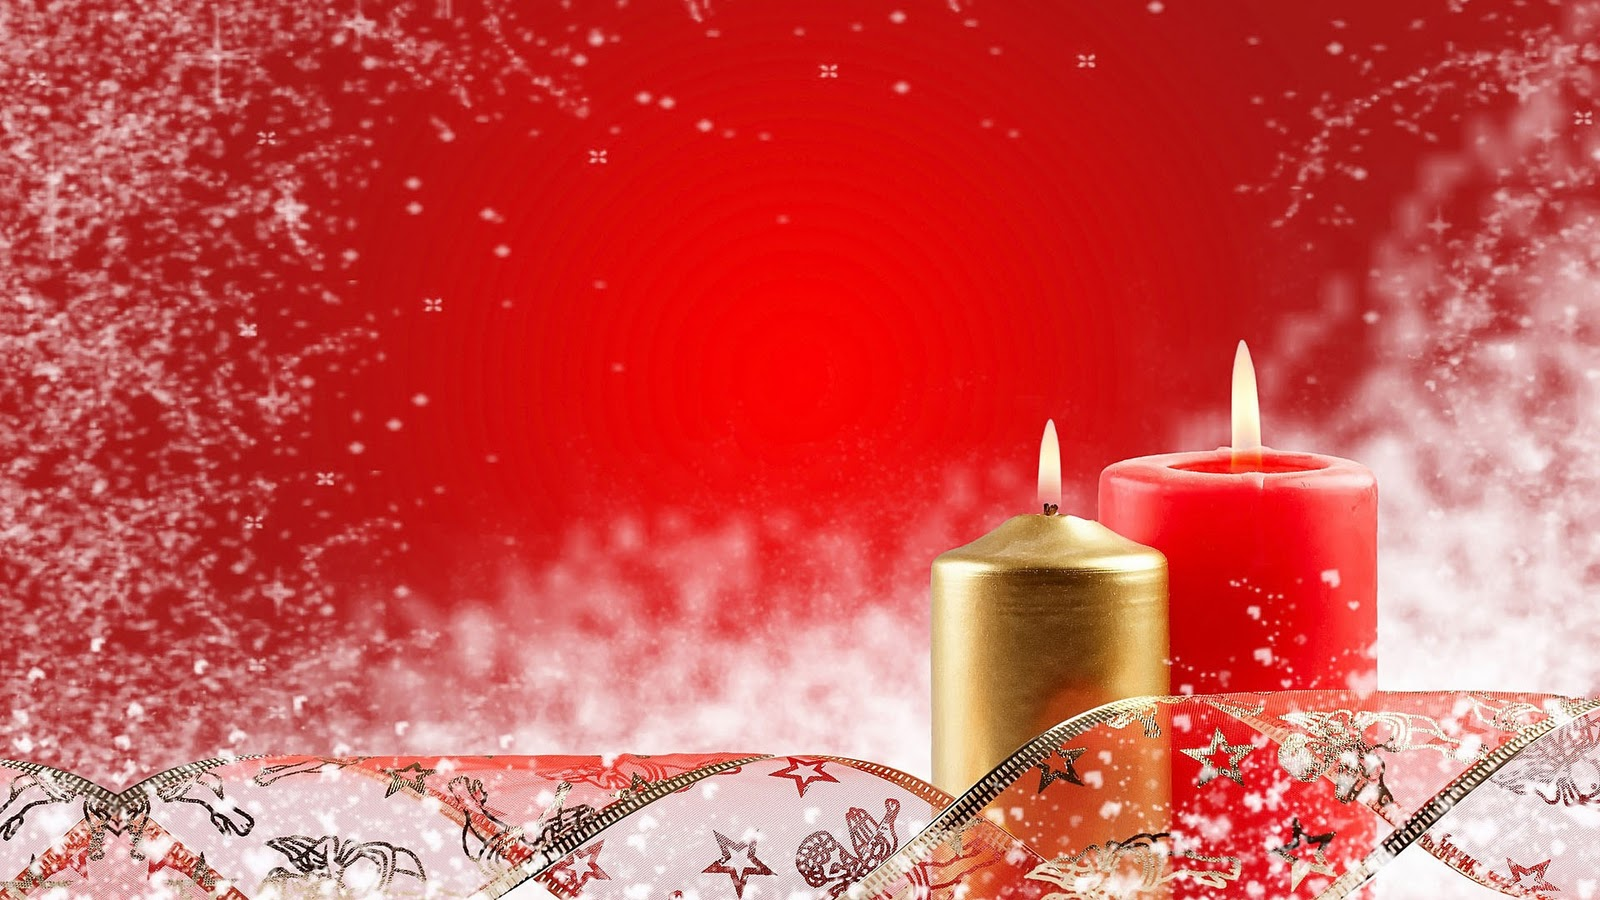 beautiful christmas wallpapers free - wallpapersafari